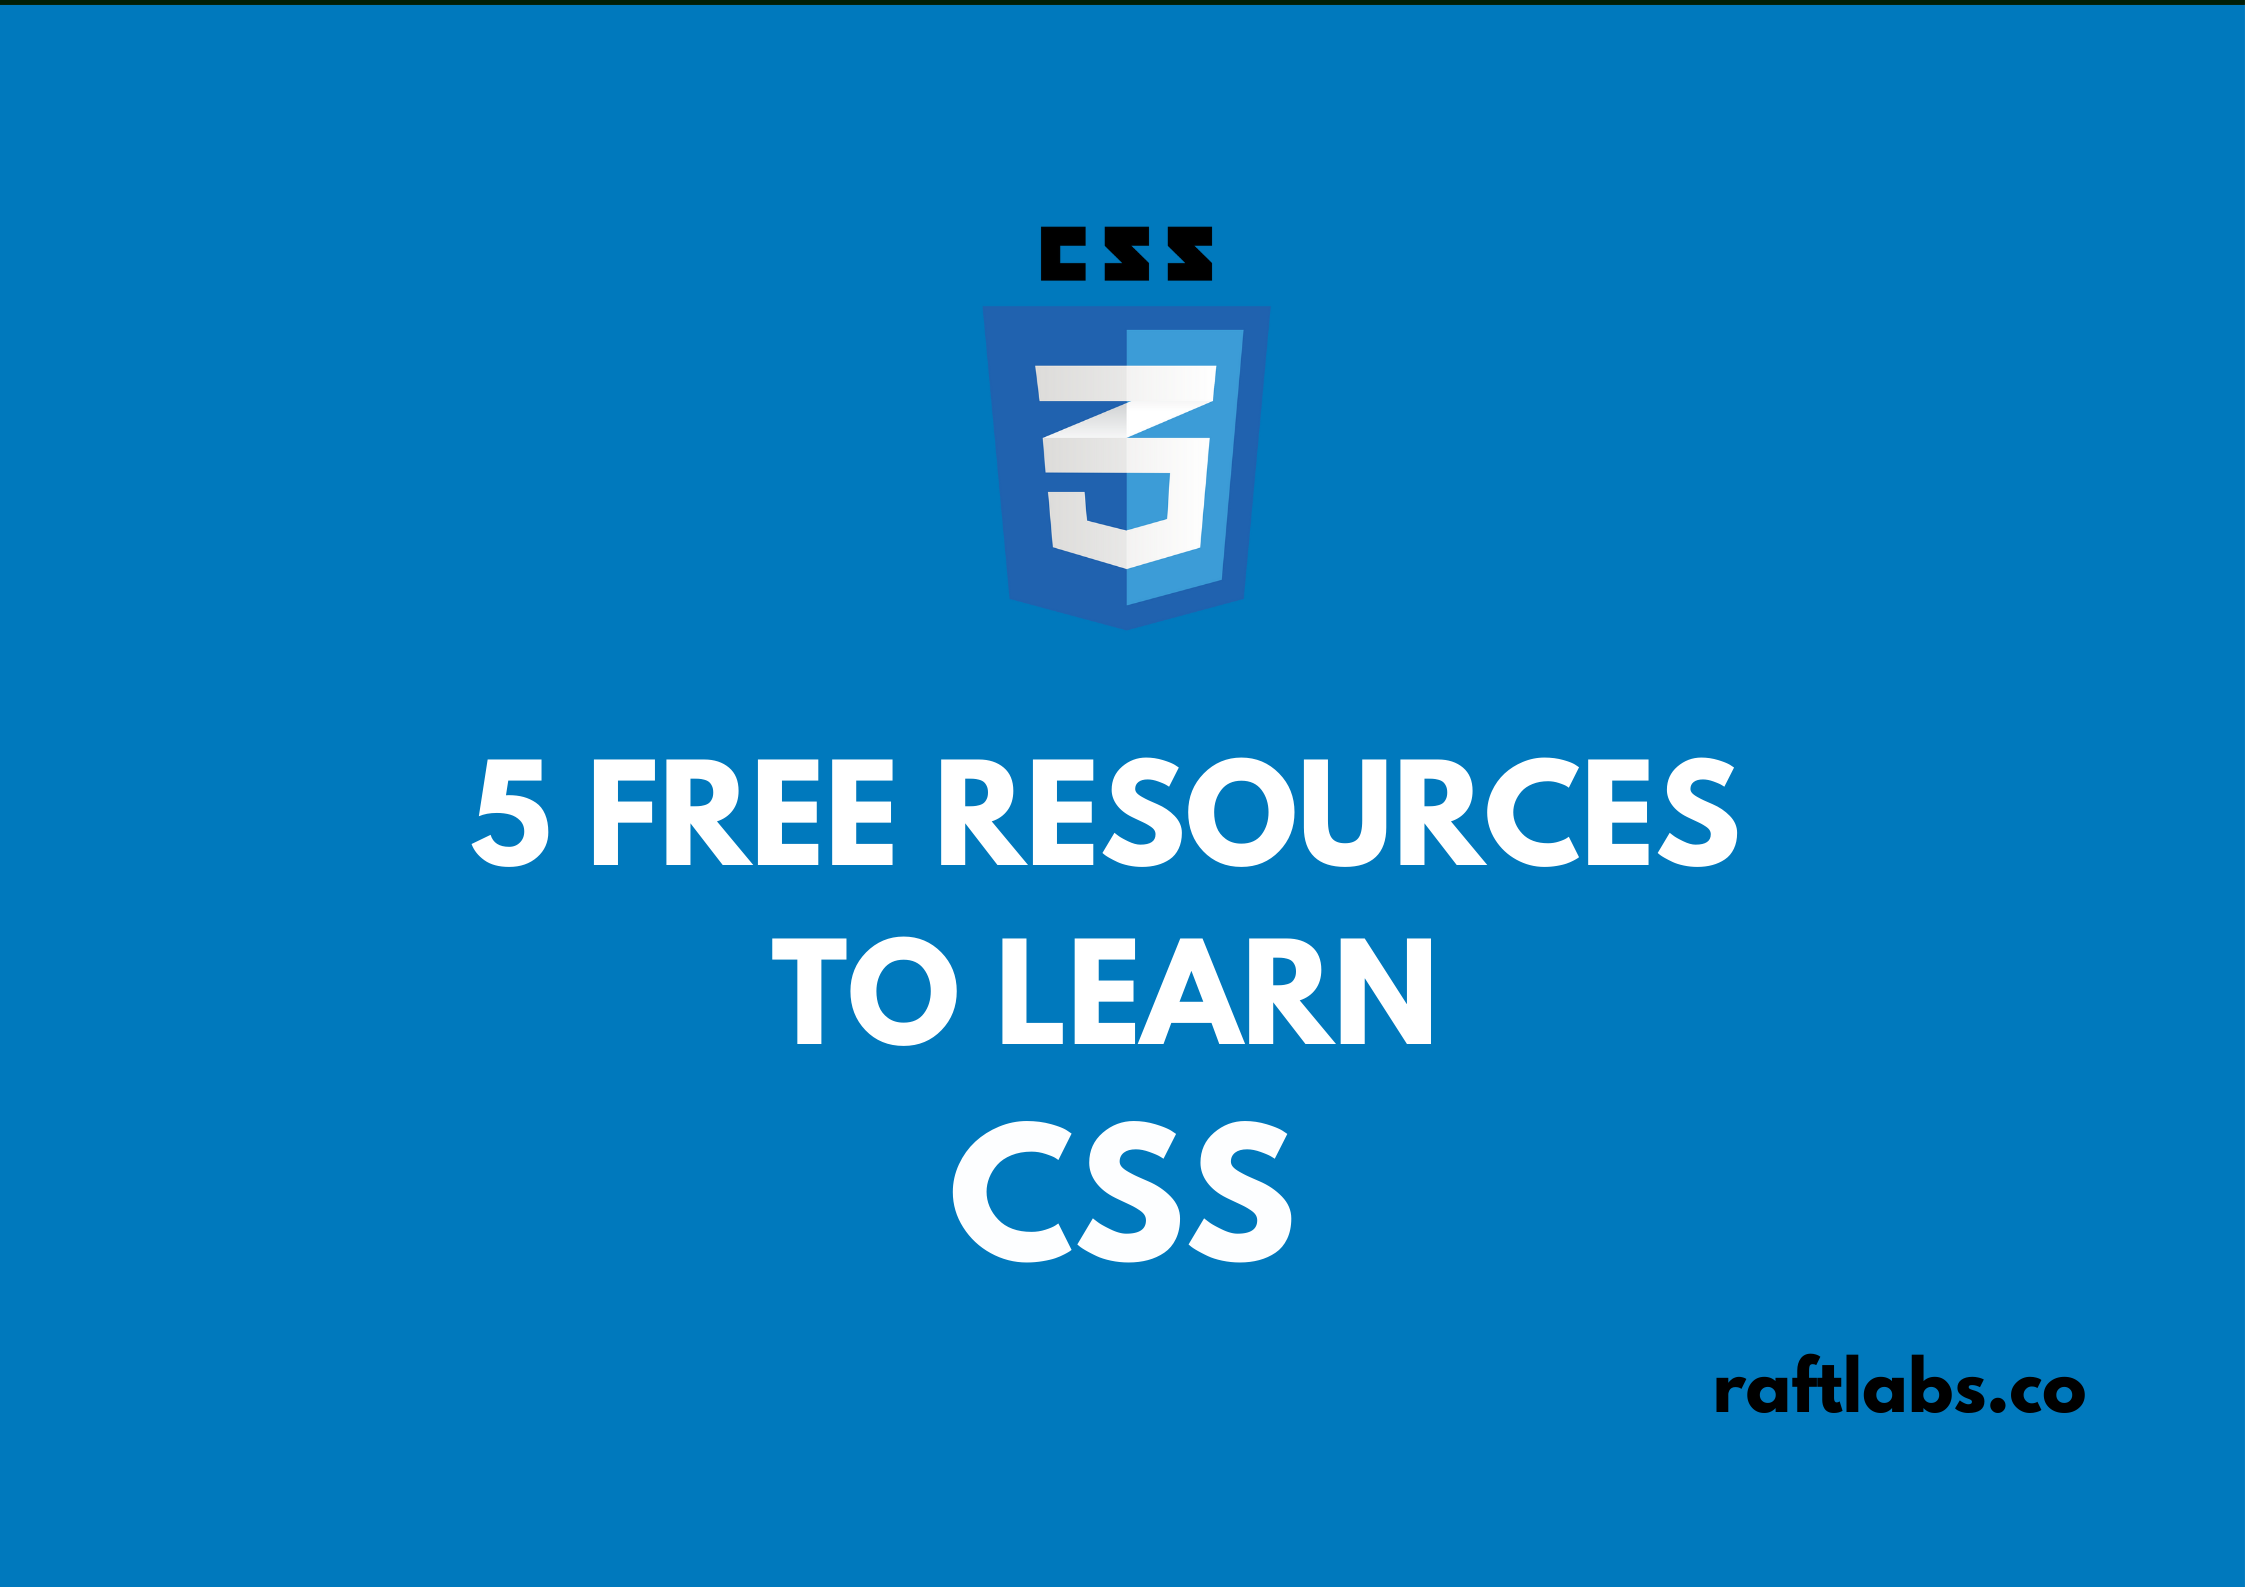 5 Free Resources to learn CSS with CSS logo - raftlabs.co